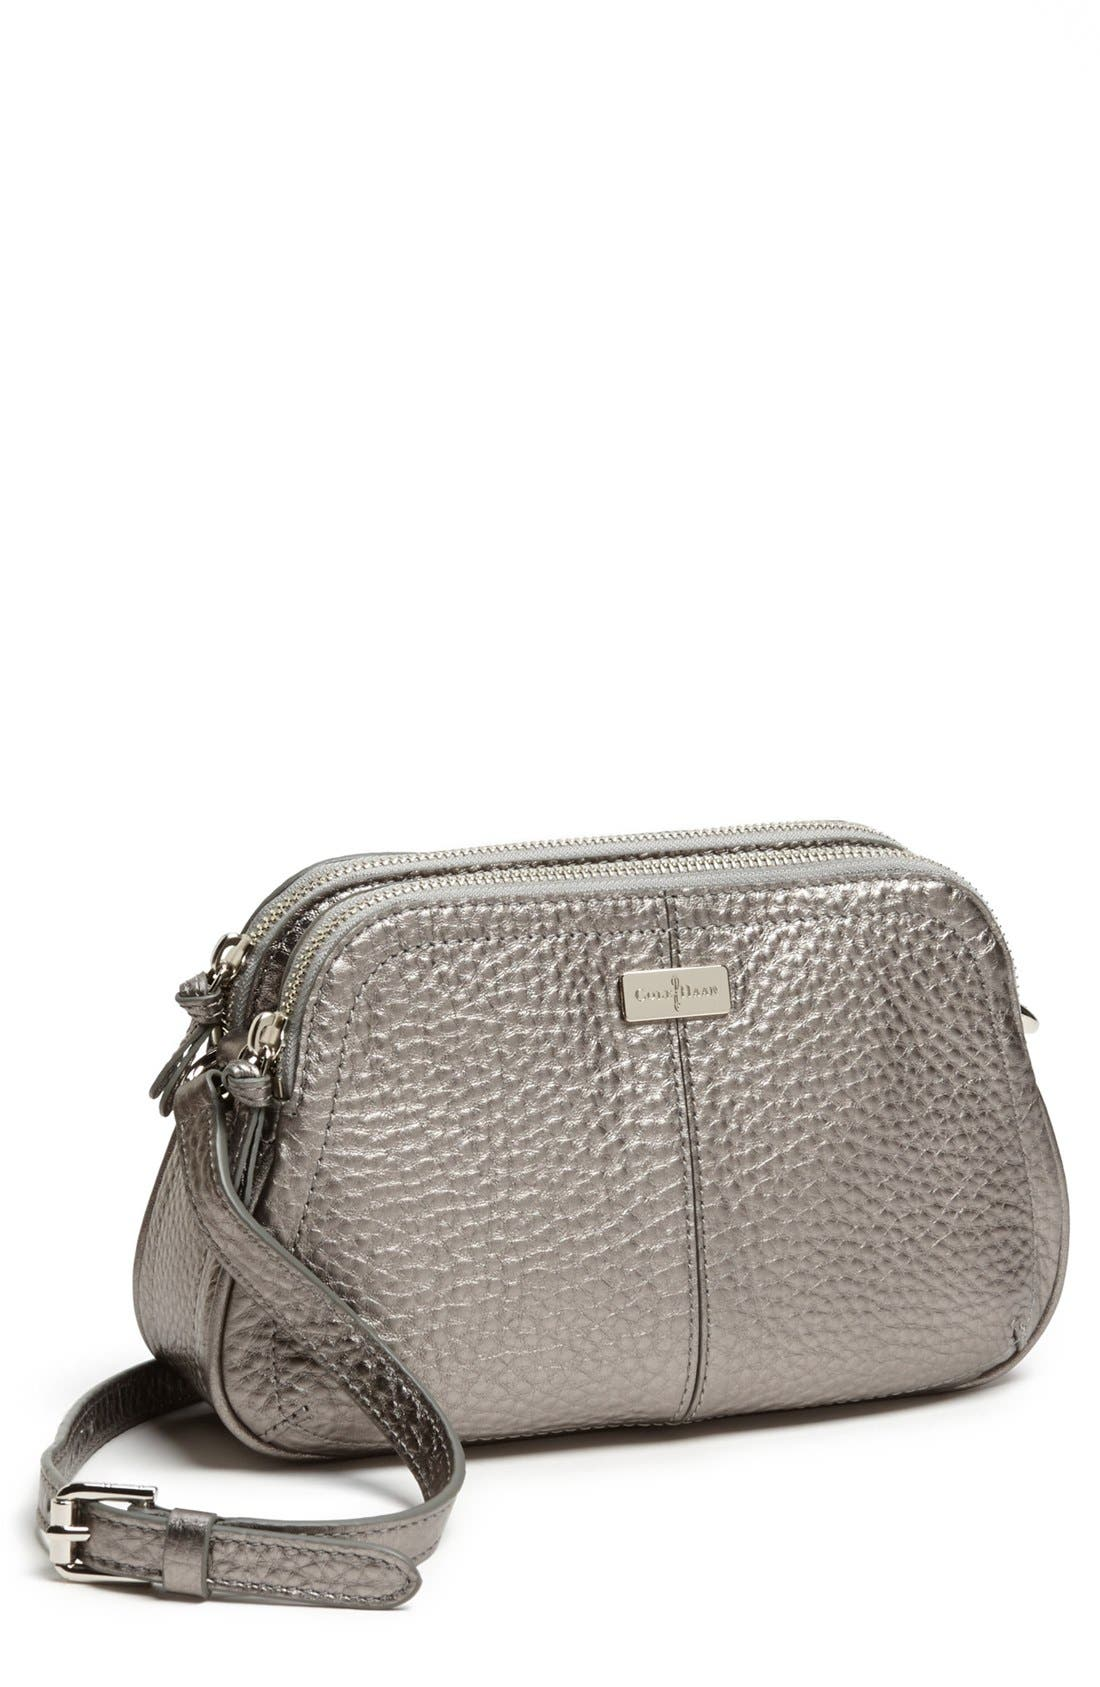 Alternate Image 1 Selected - Cole Haan 'Village' Crossbody Bag